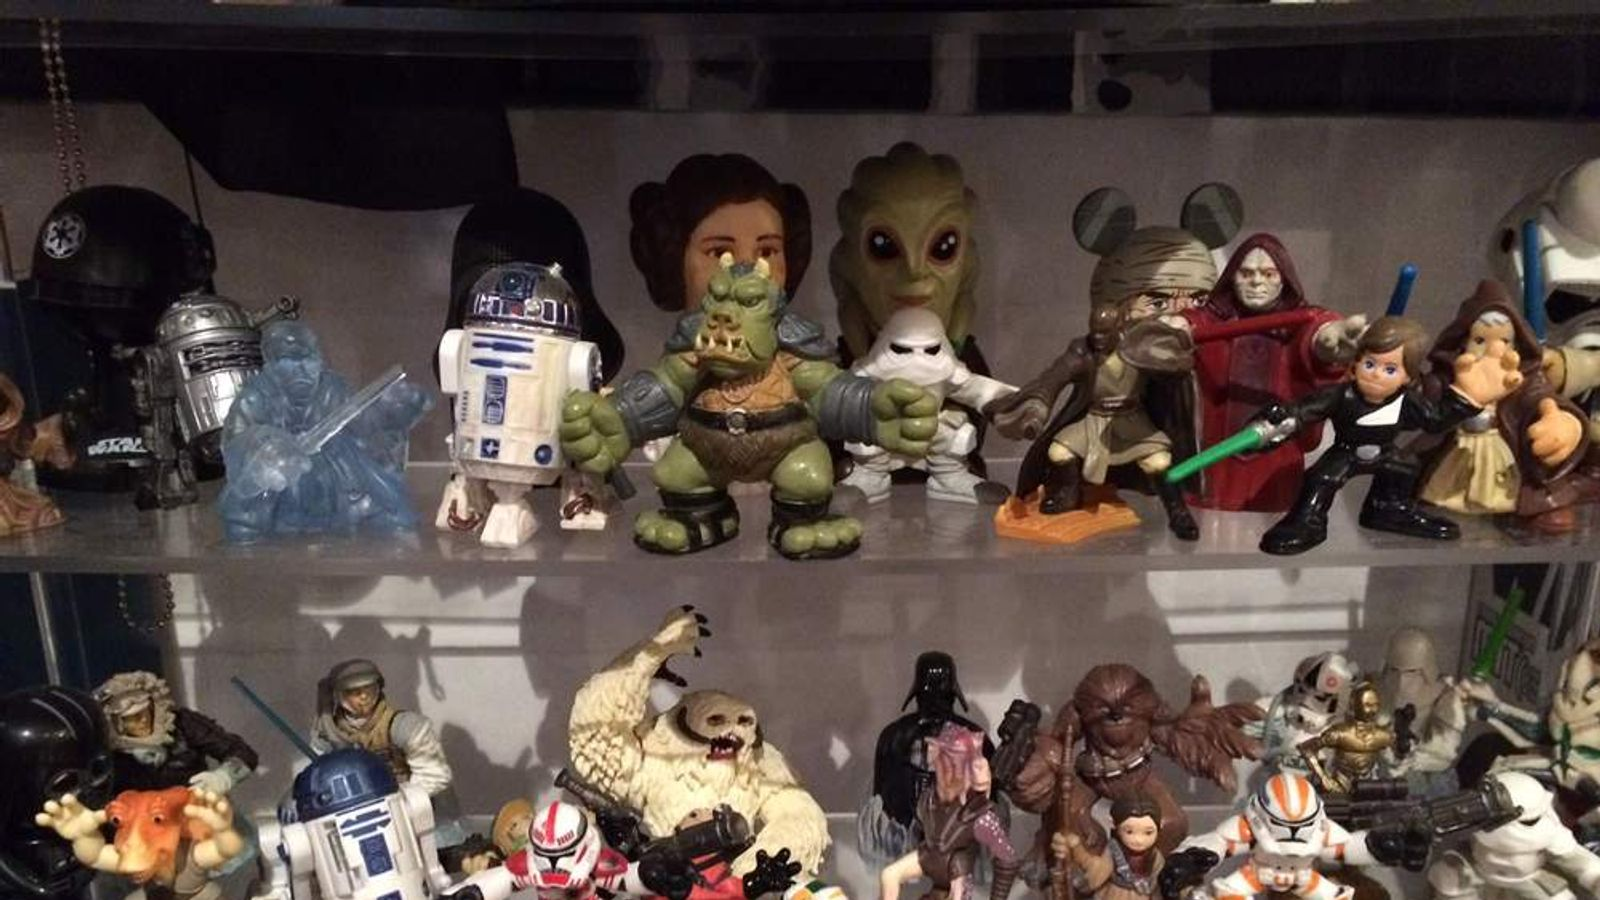 Star Wars memorobilia